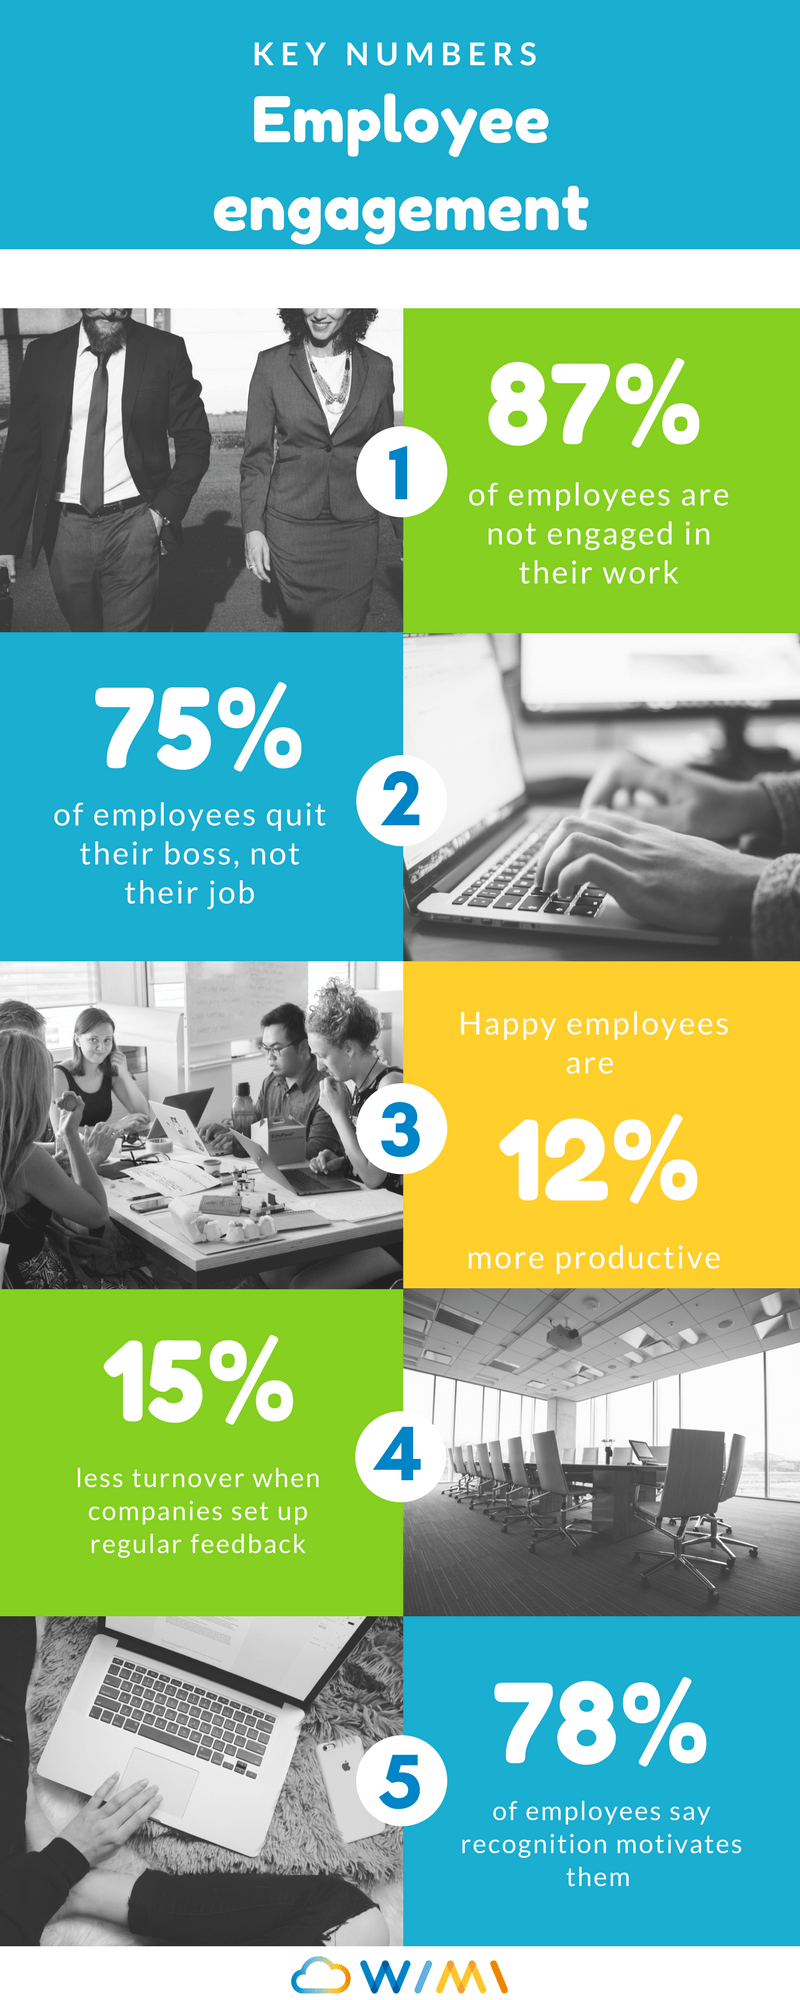 employee engagement infographic key numbers